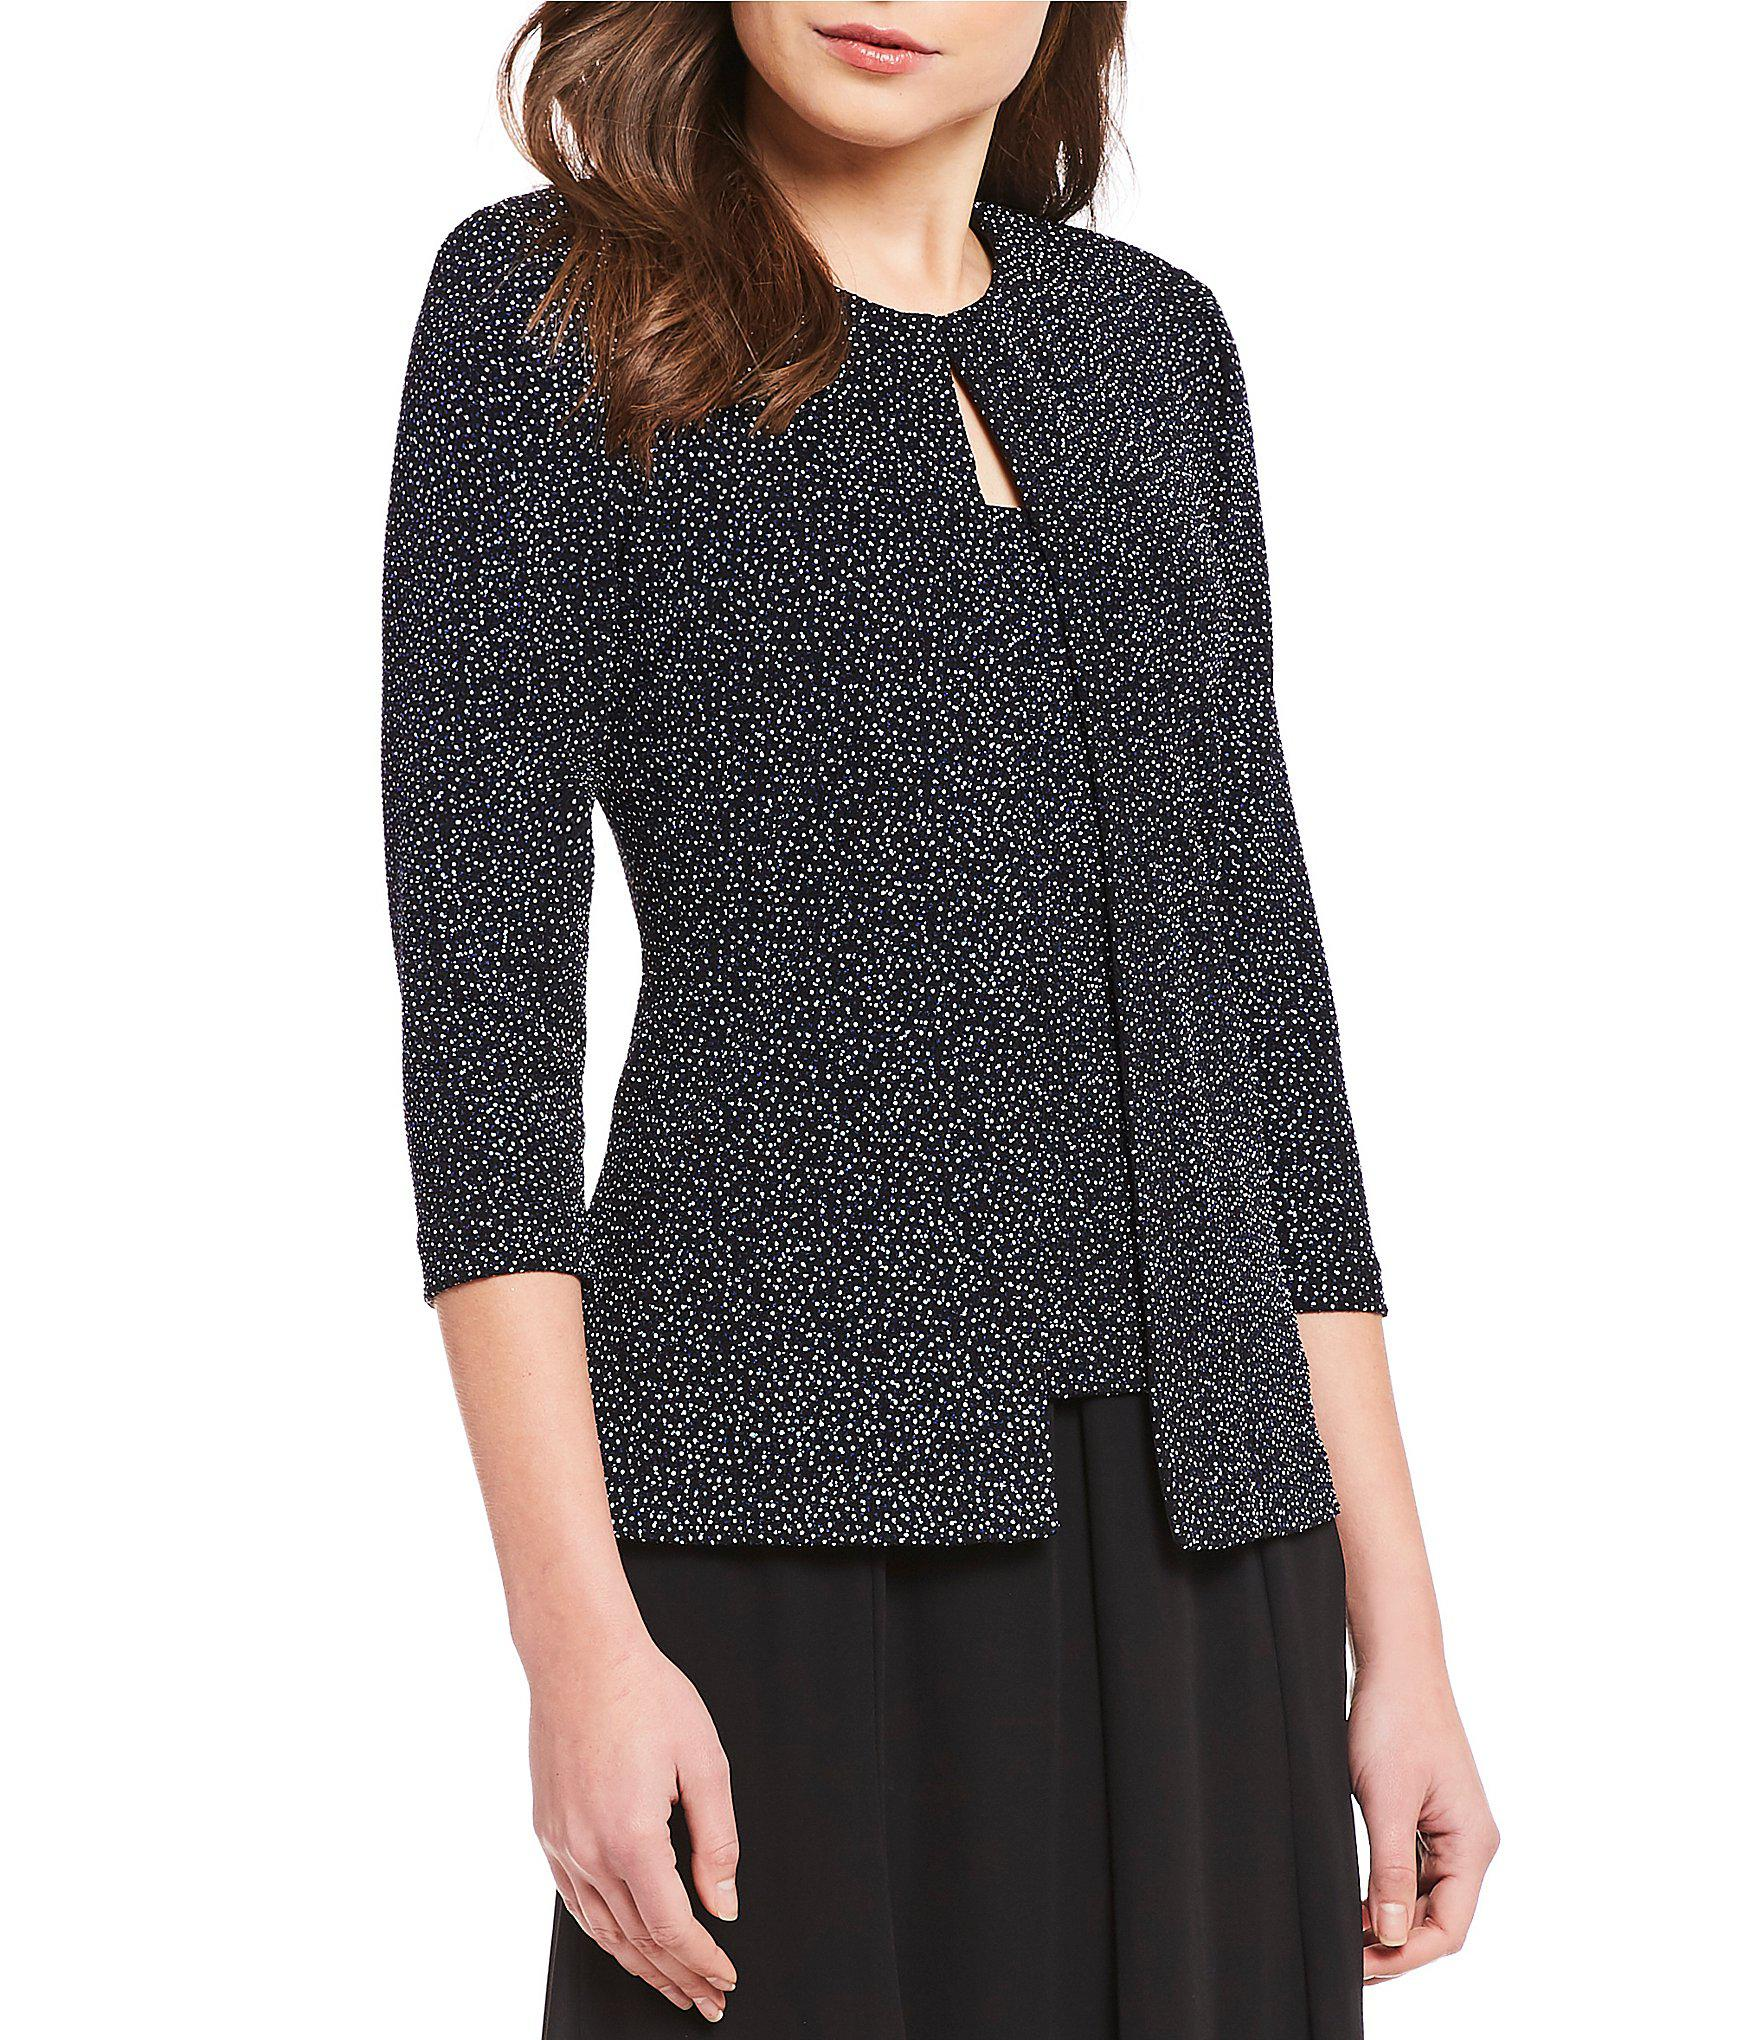 7fa1669dc3a Lyst - Alex Evenings 3 4 Sleeve Printed Glitter Knit Twinset in Black